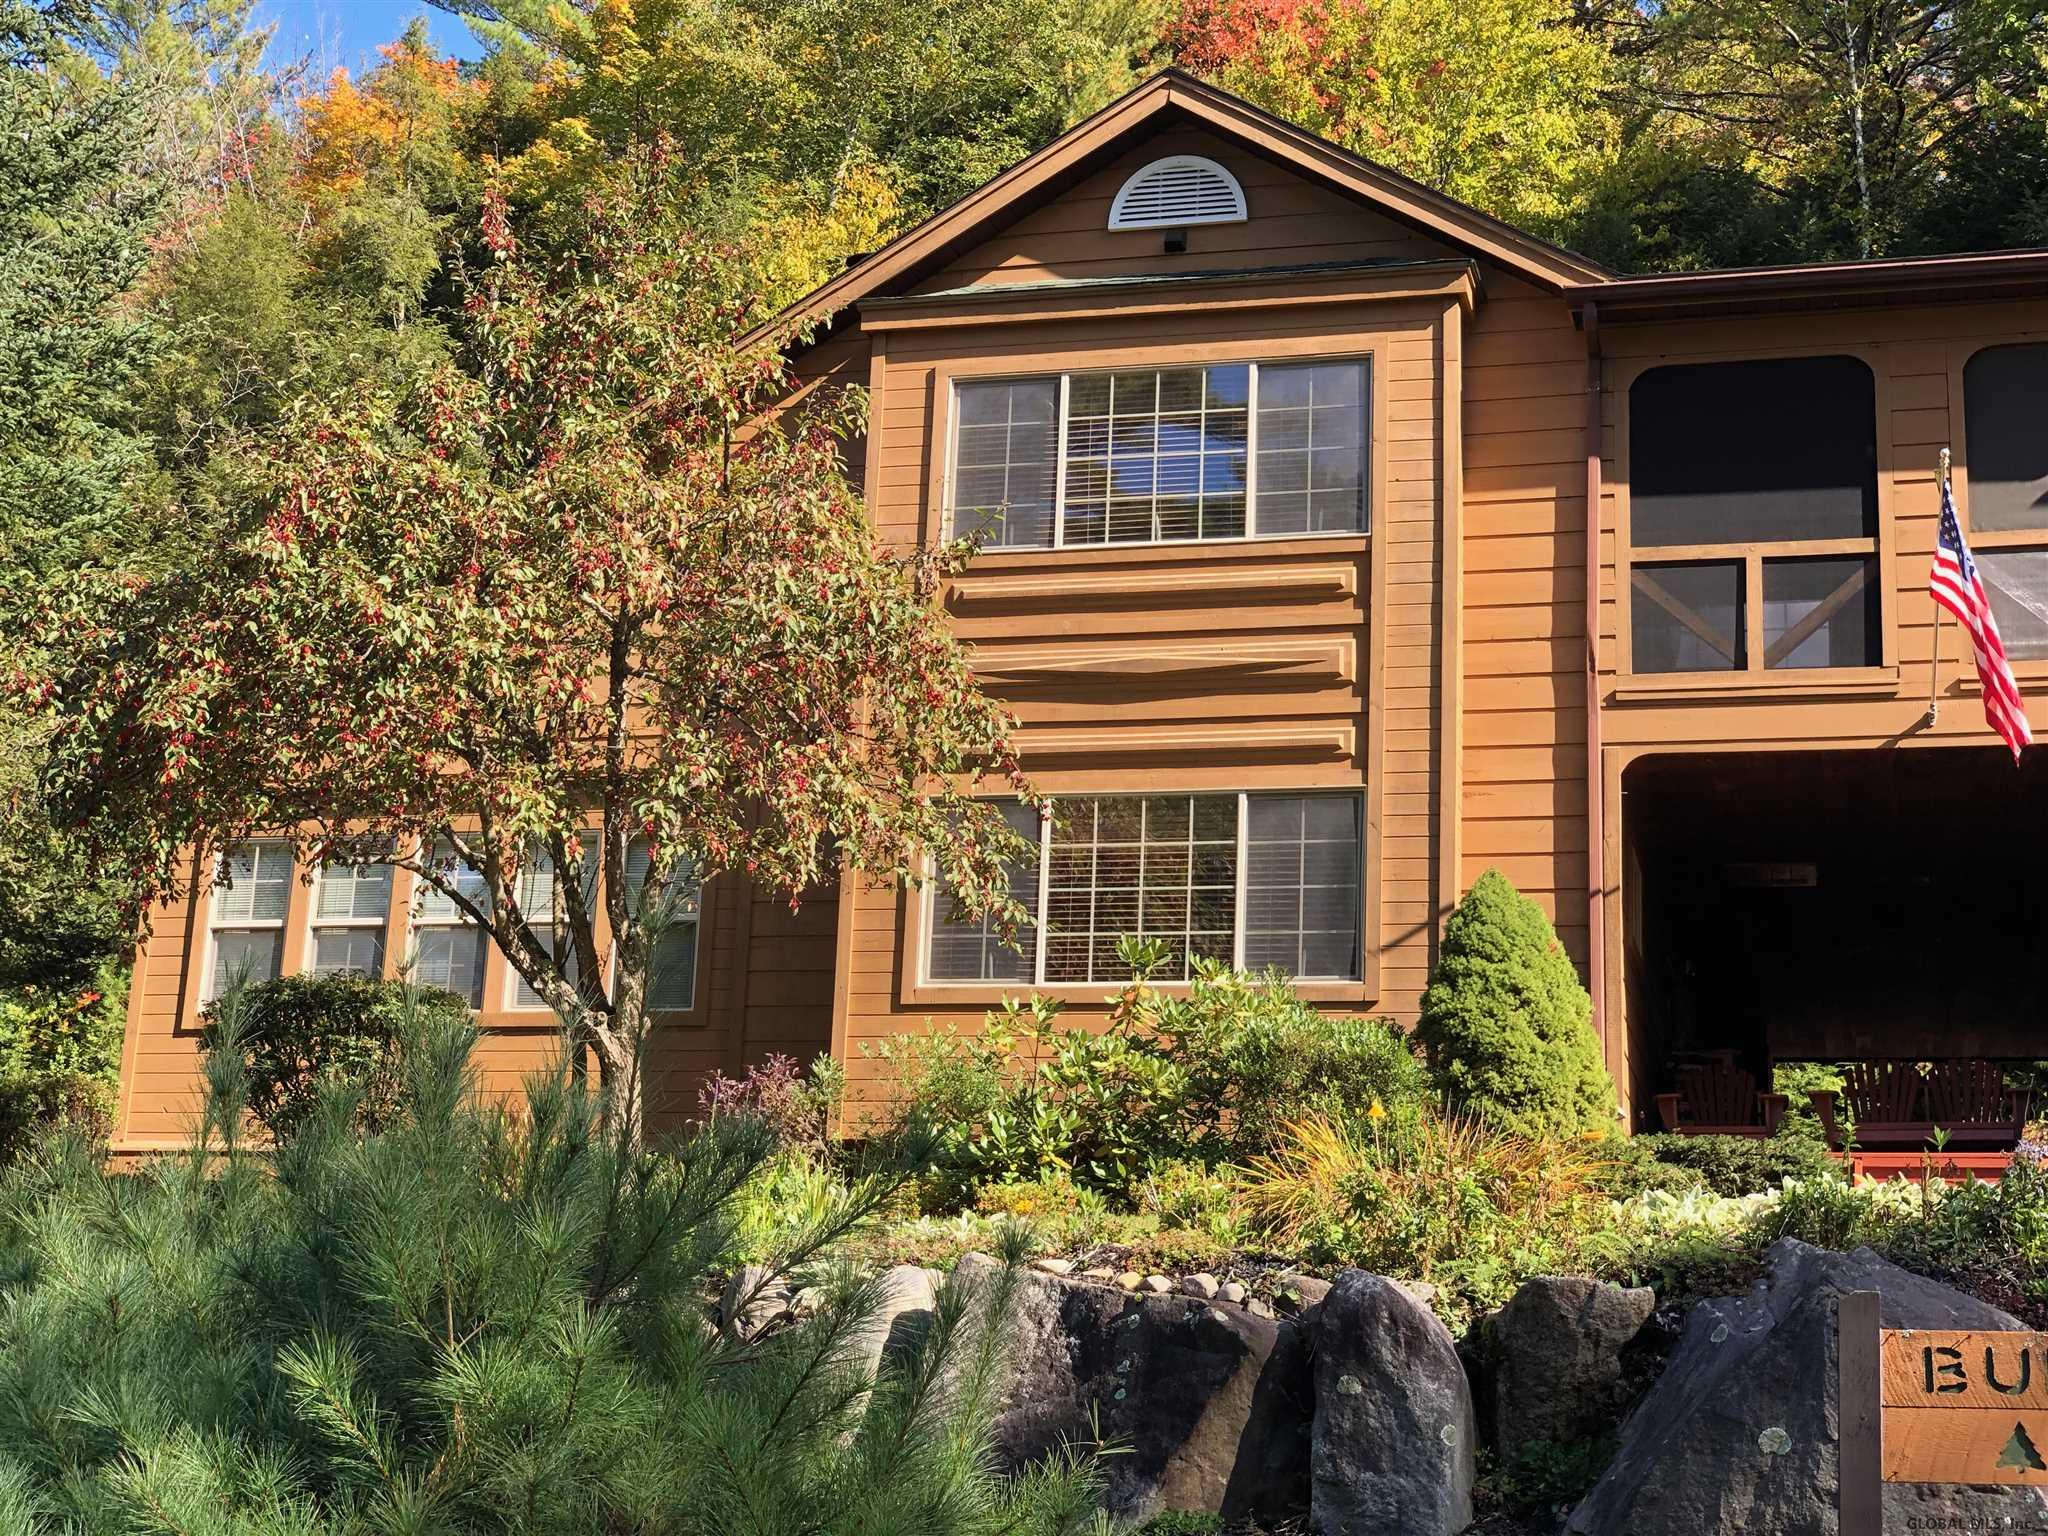 23a Balsam Crest Ct, Warrensburg, NY 12885